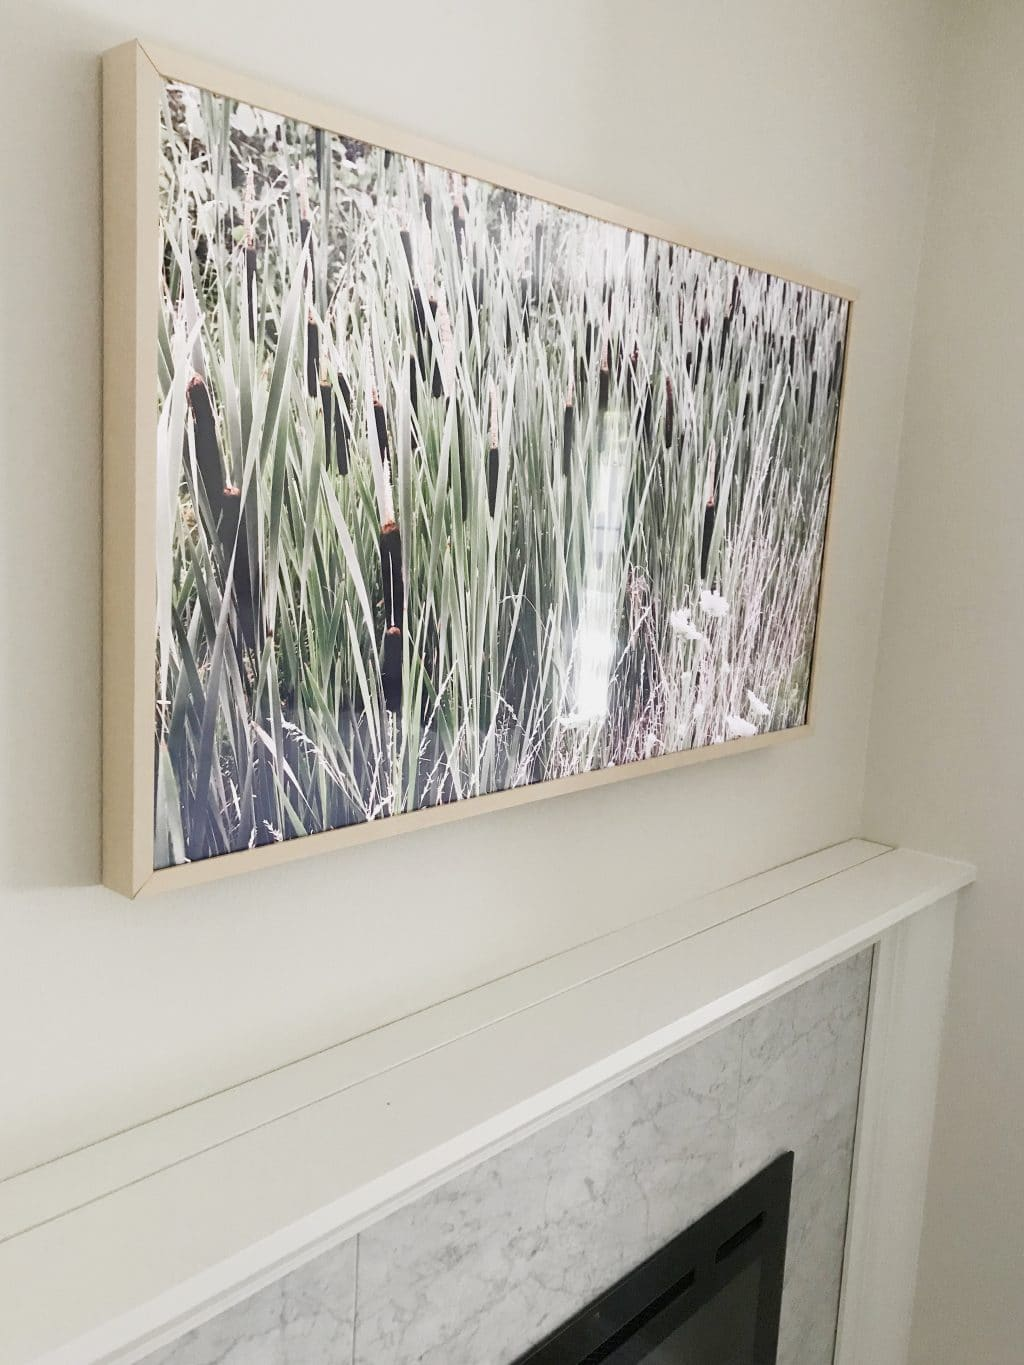 Our Samsung Frame Tv An Unsolicited Review Chris Loves Julia